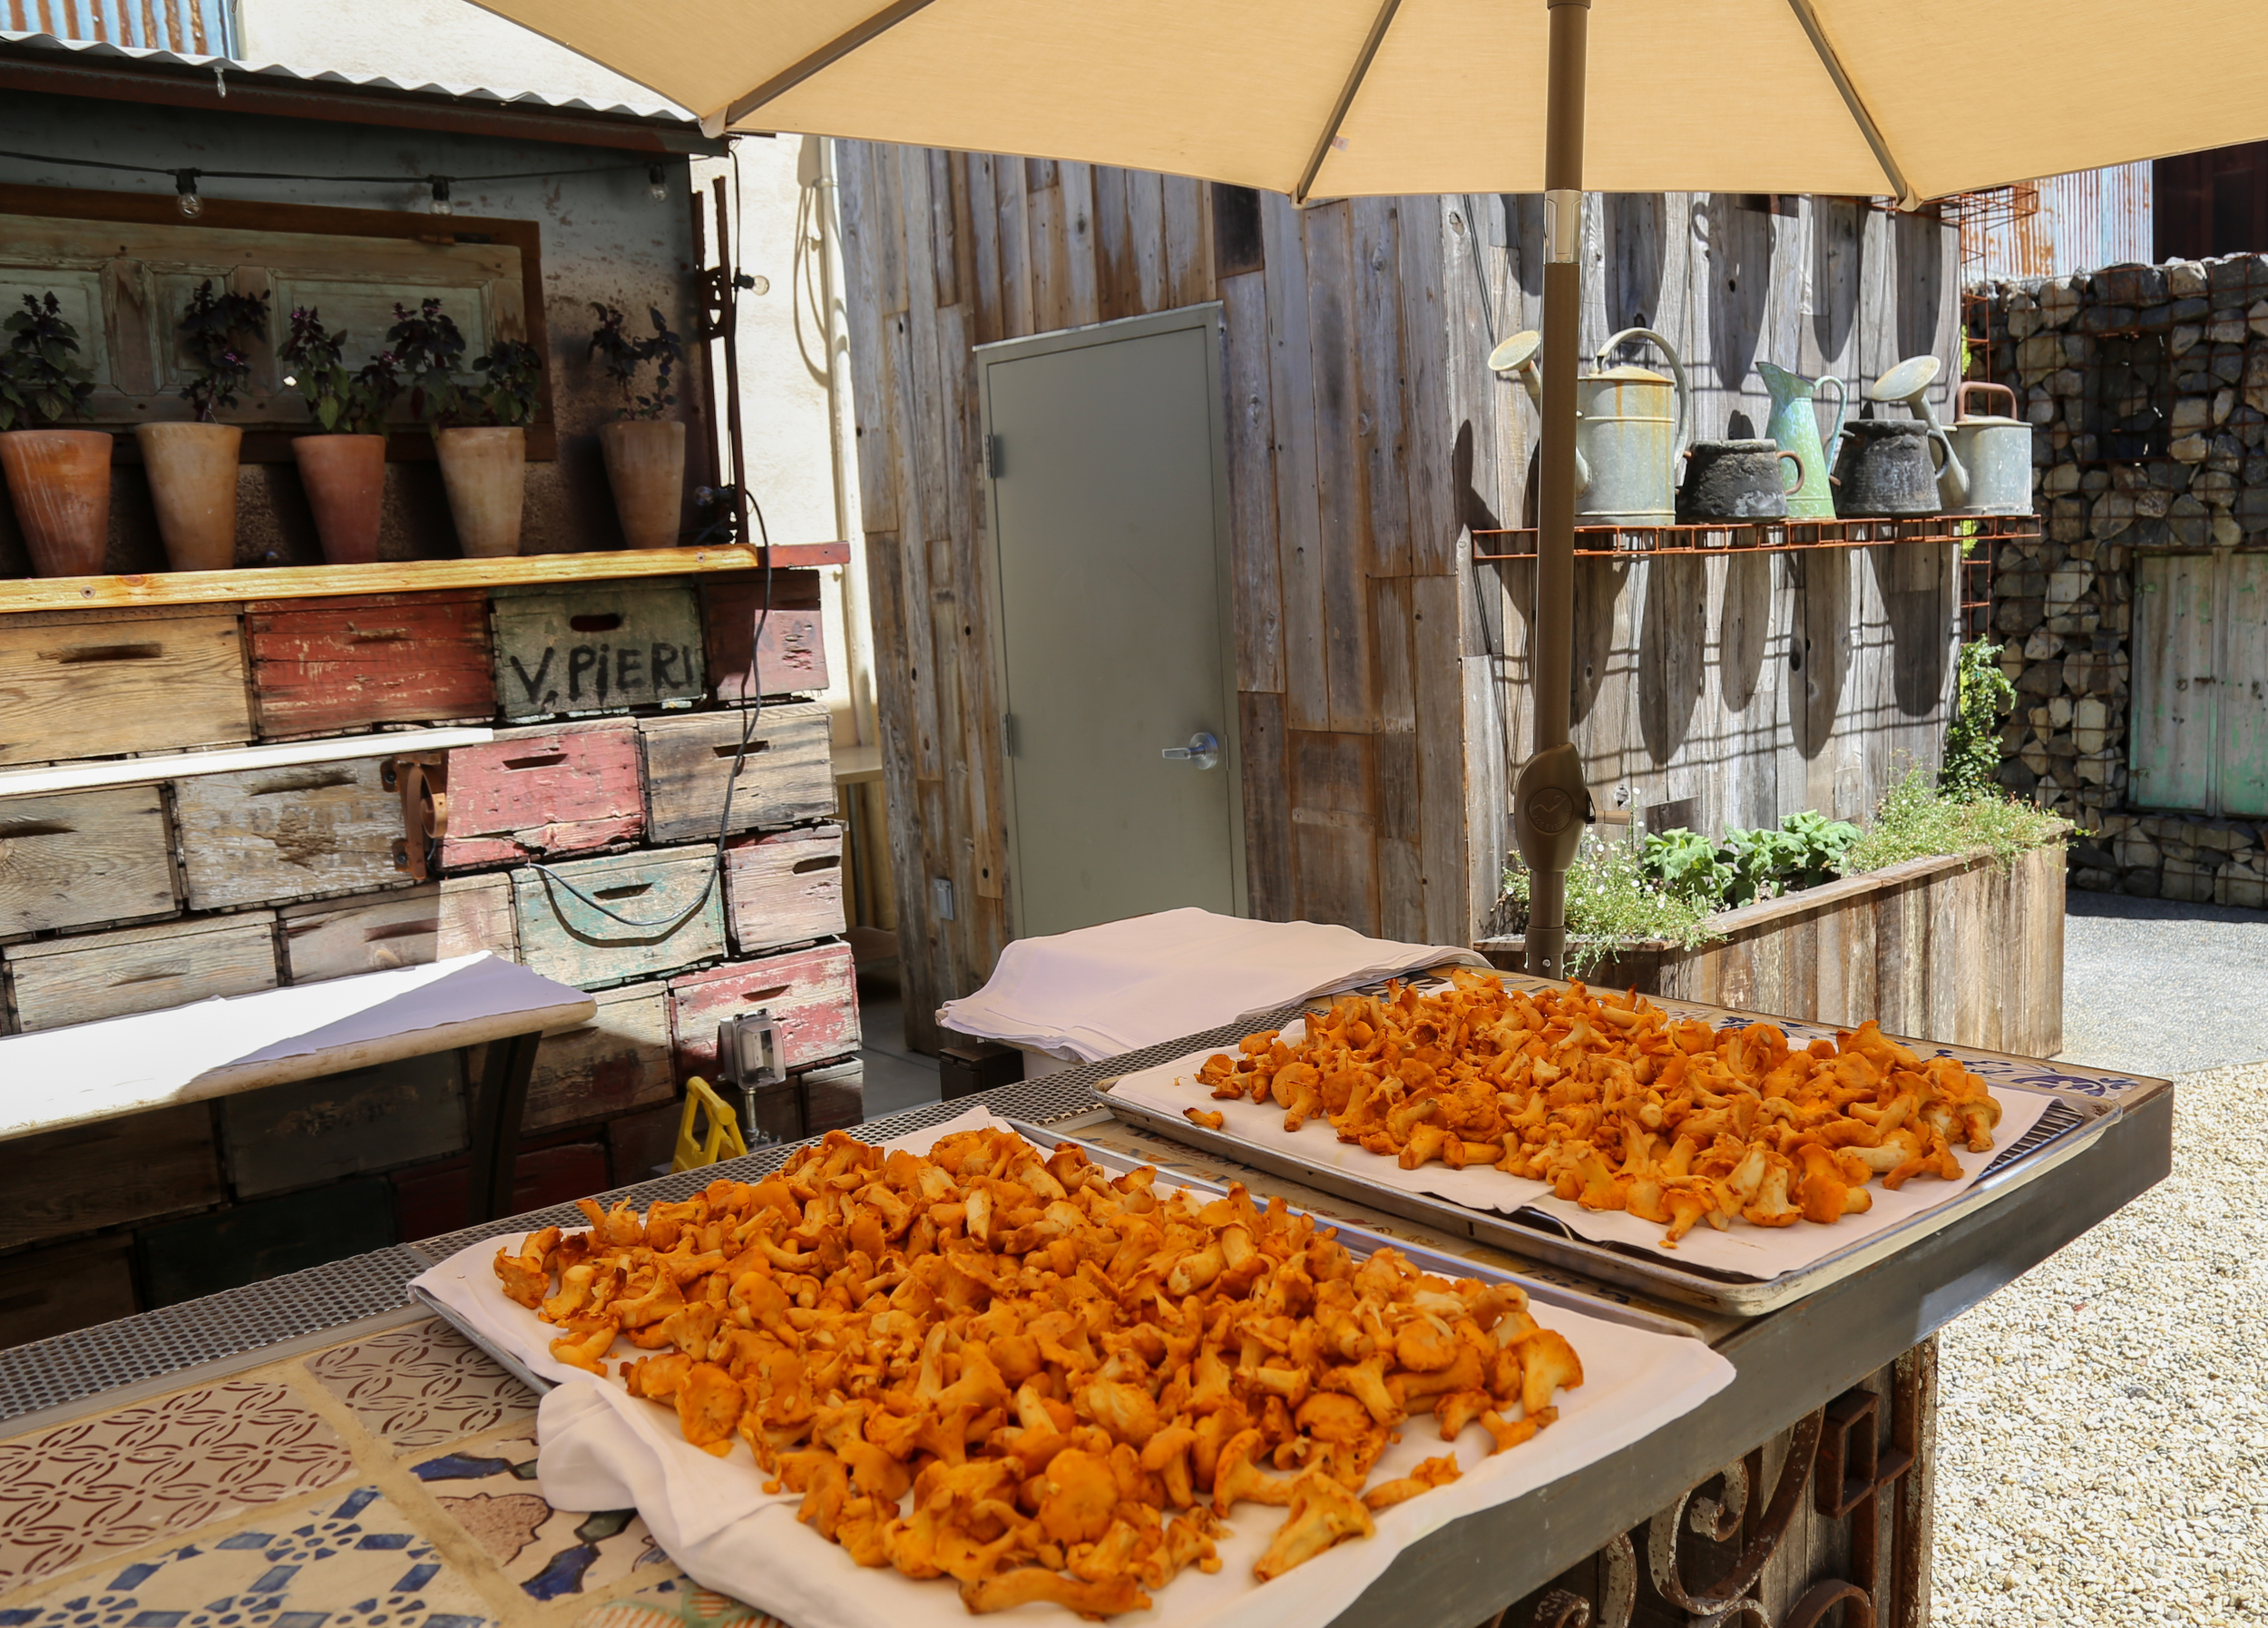 Chanterelles drying on the gallery bar